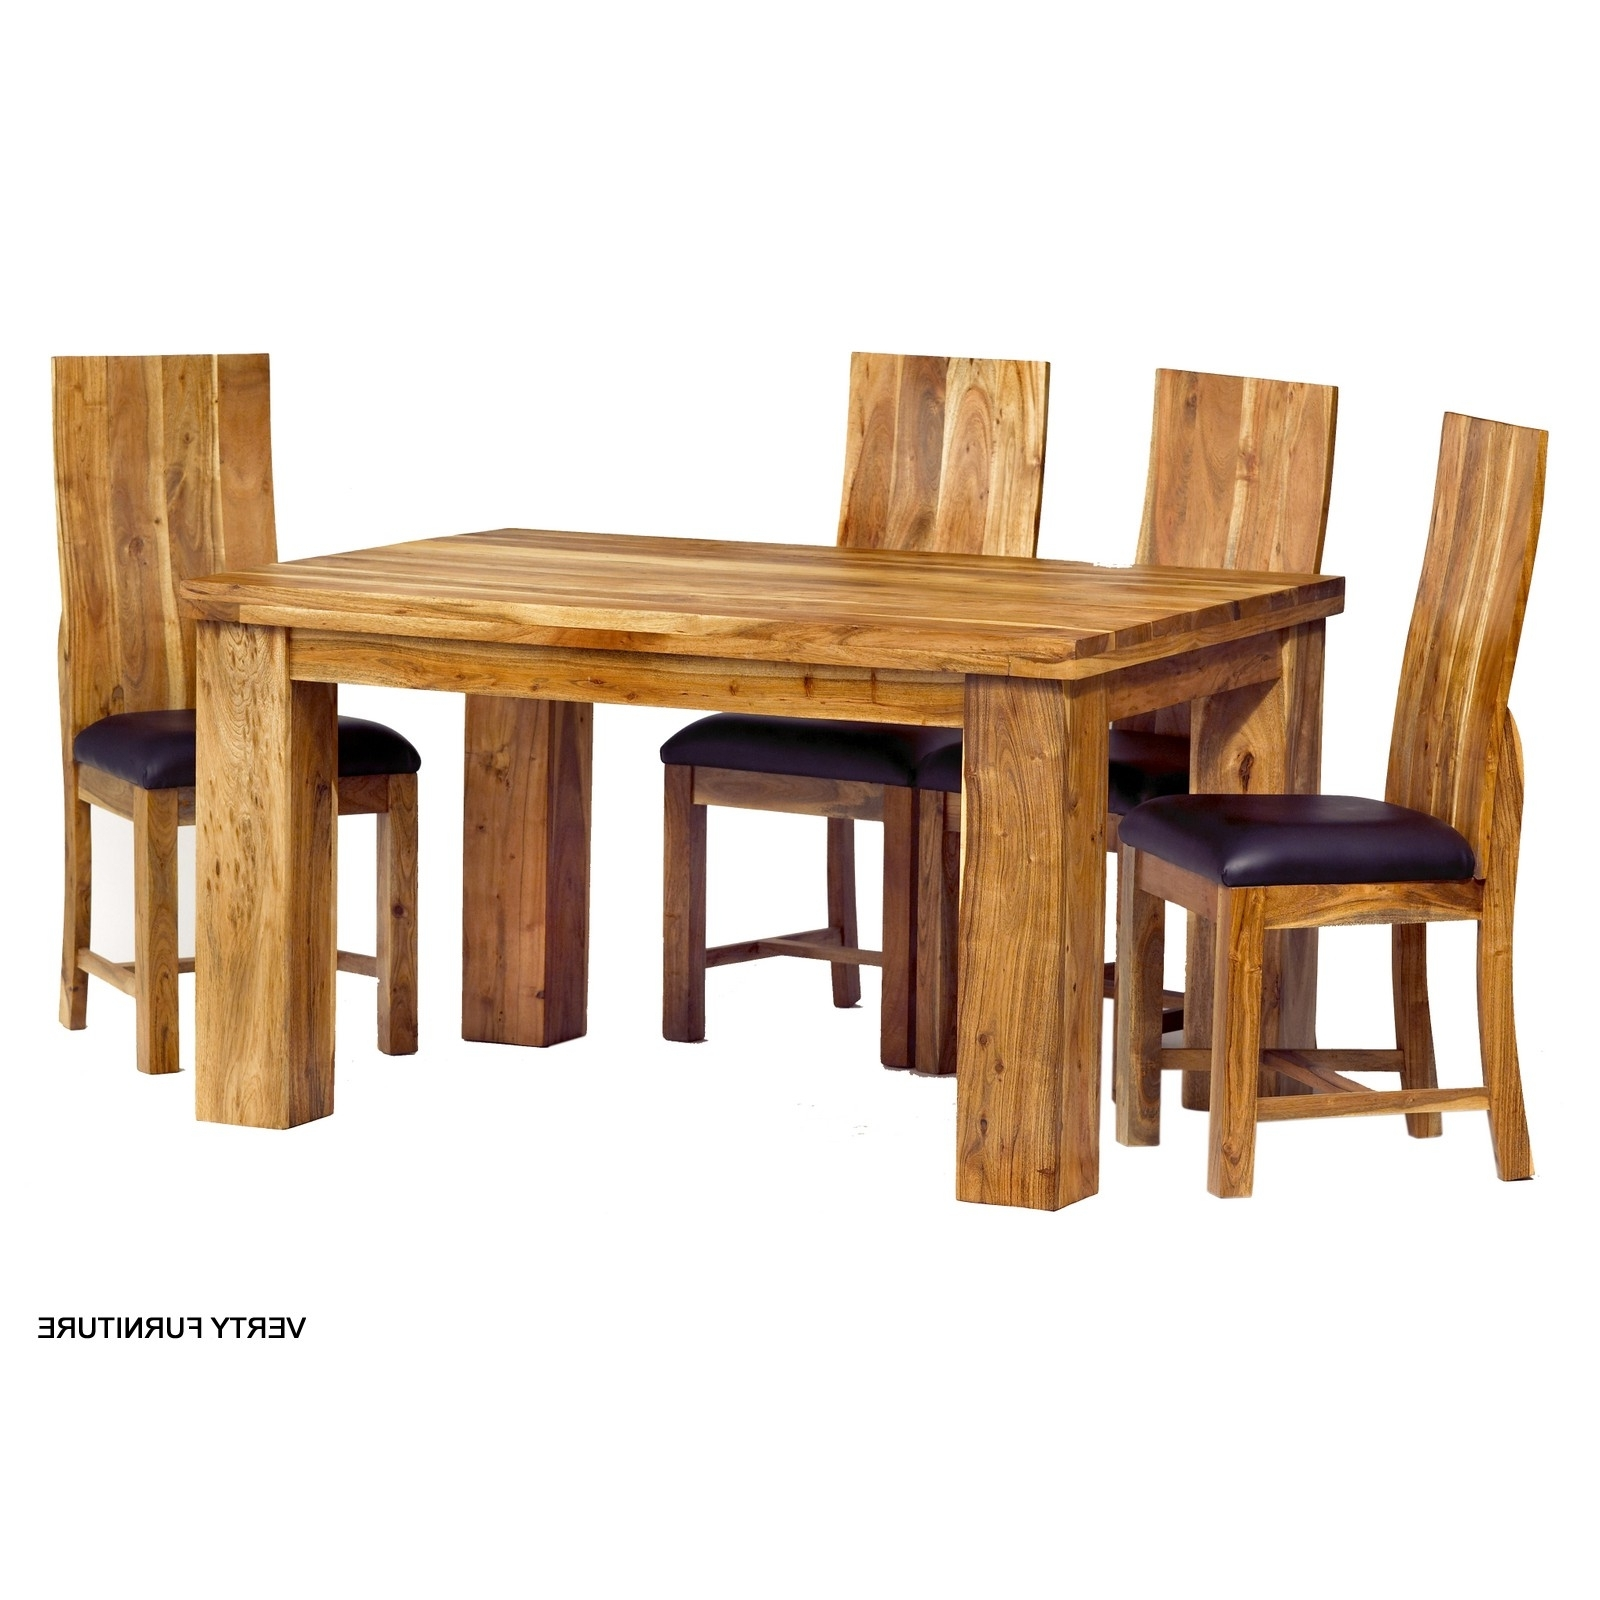 Indian Dining Chairs In Preferred Acacia Dining Table – Small With 4 Chairs – Verty Indian Furniture (View 14 of 25)